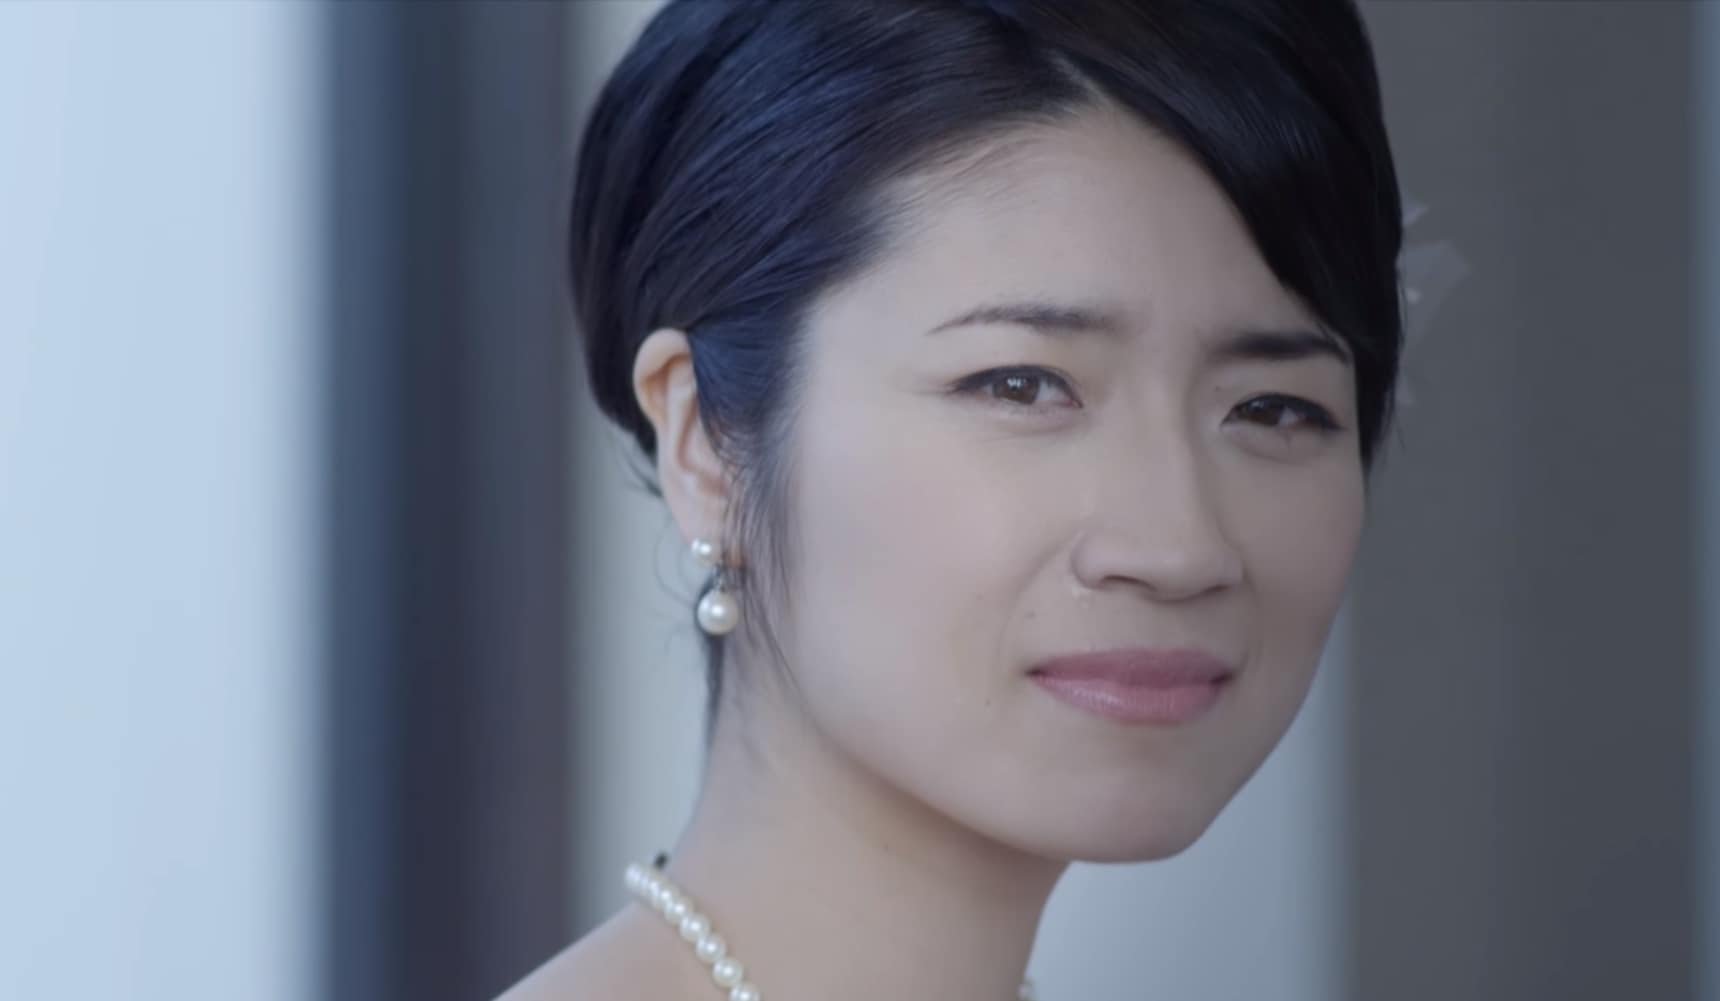 5 Touching Japanese Ads You'll Need Tissue For